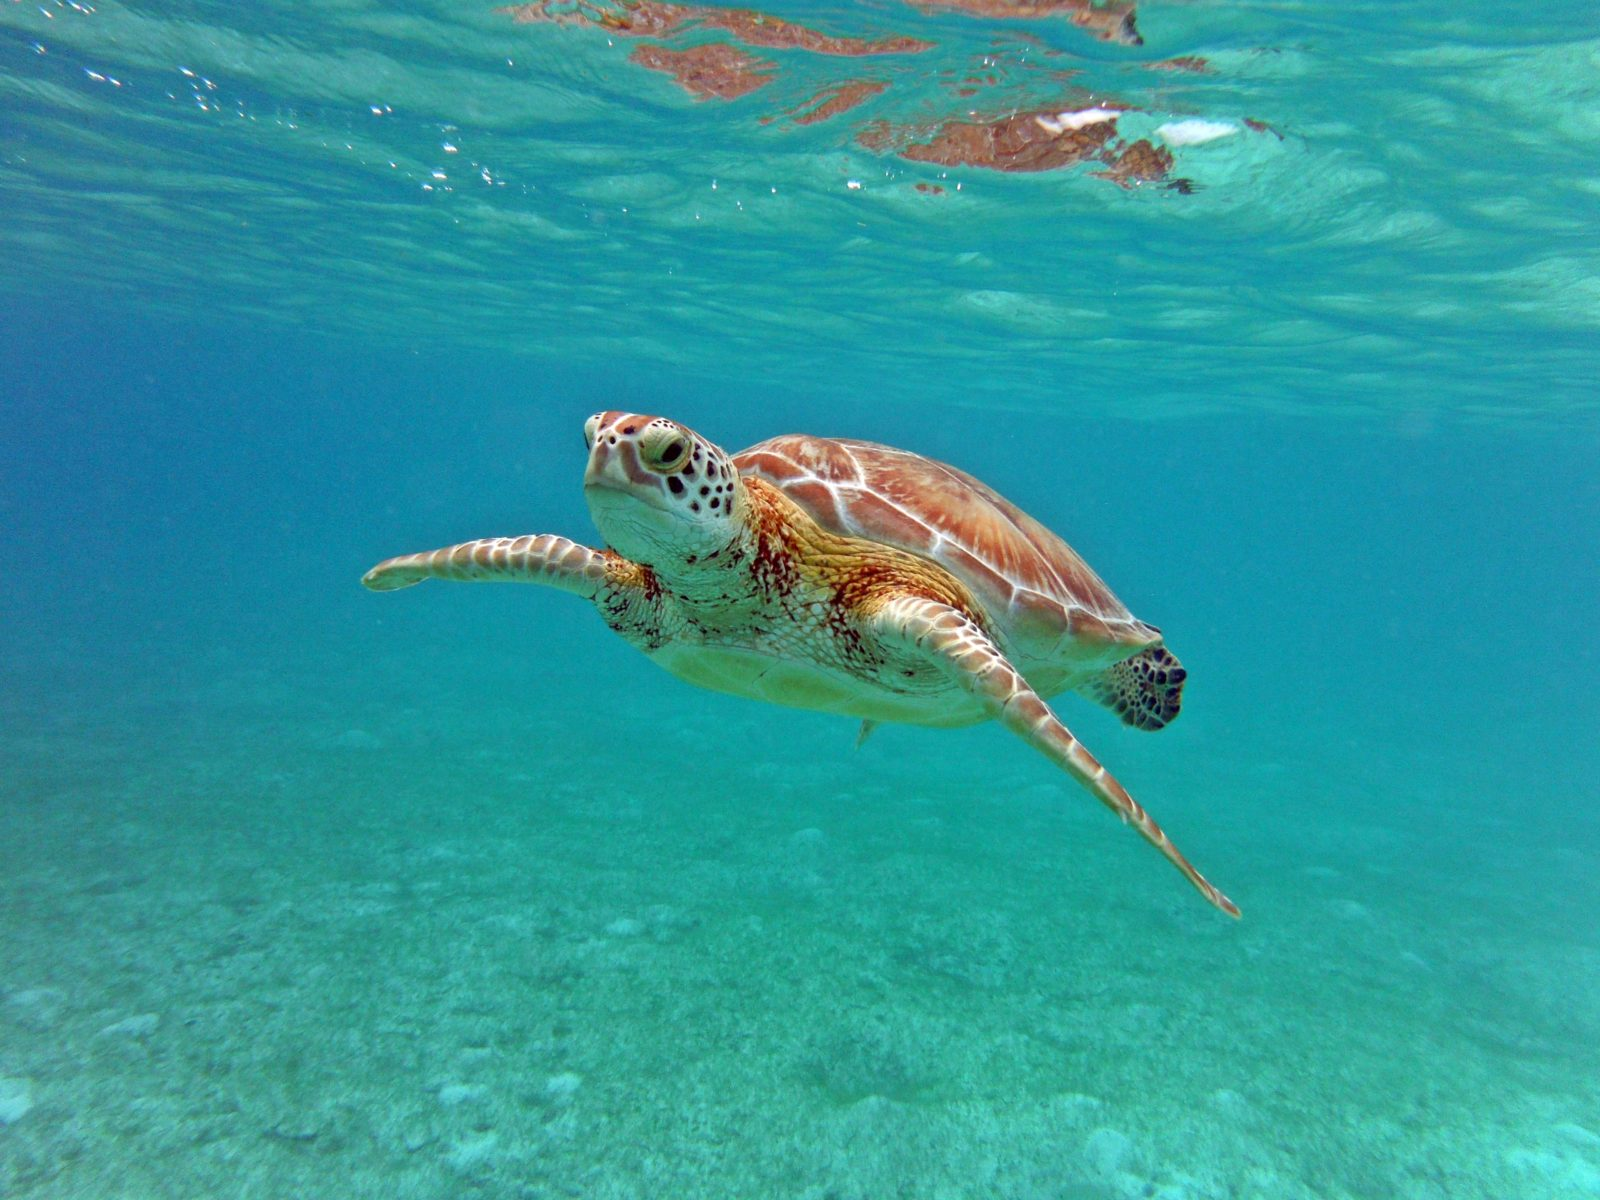 Encountering a friendly sea turtle in Cancún